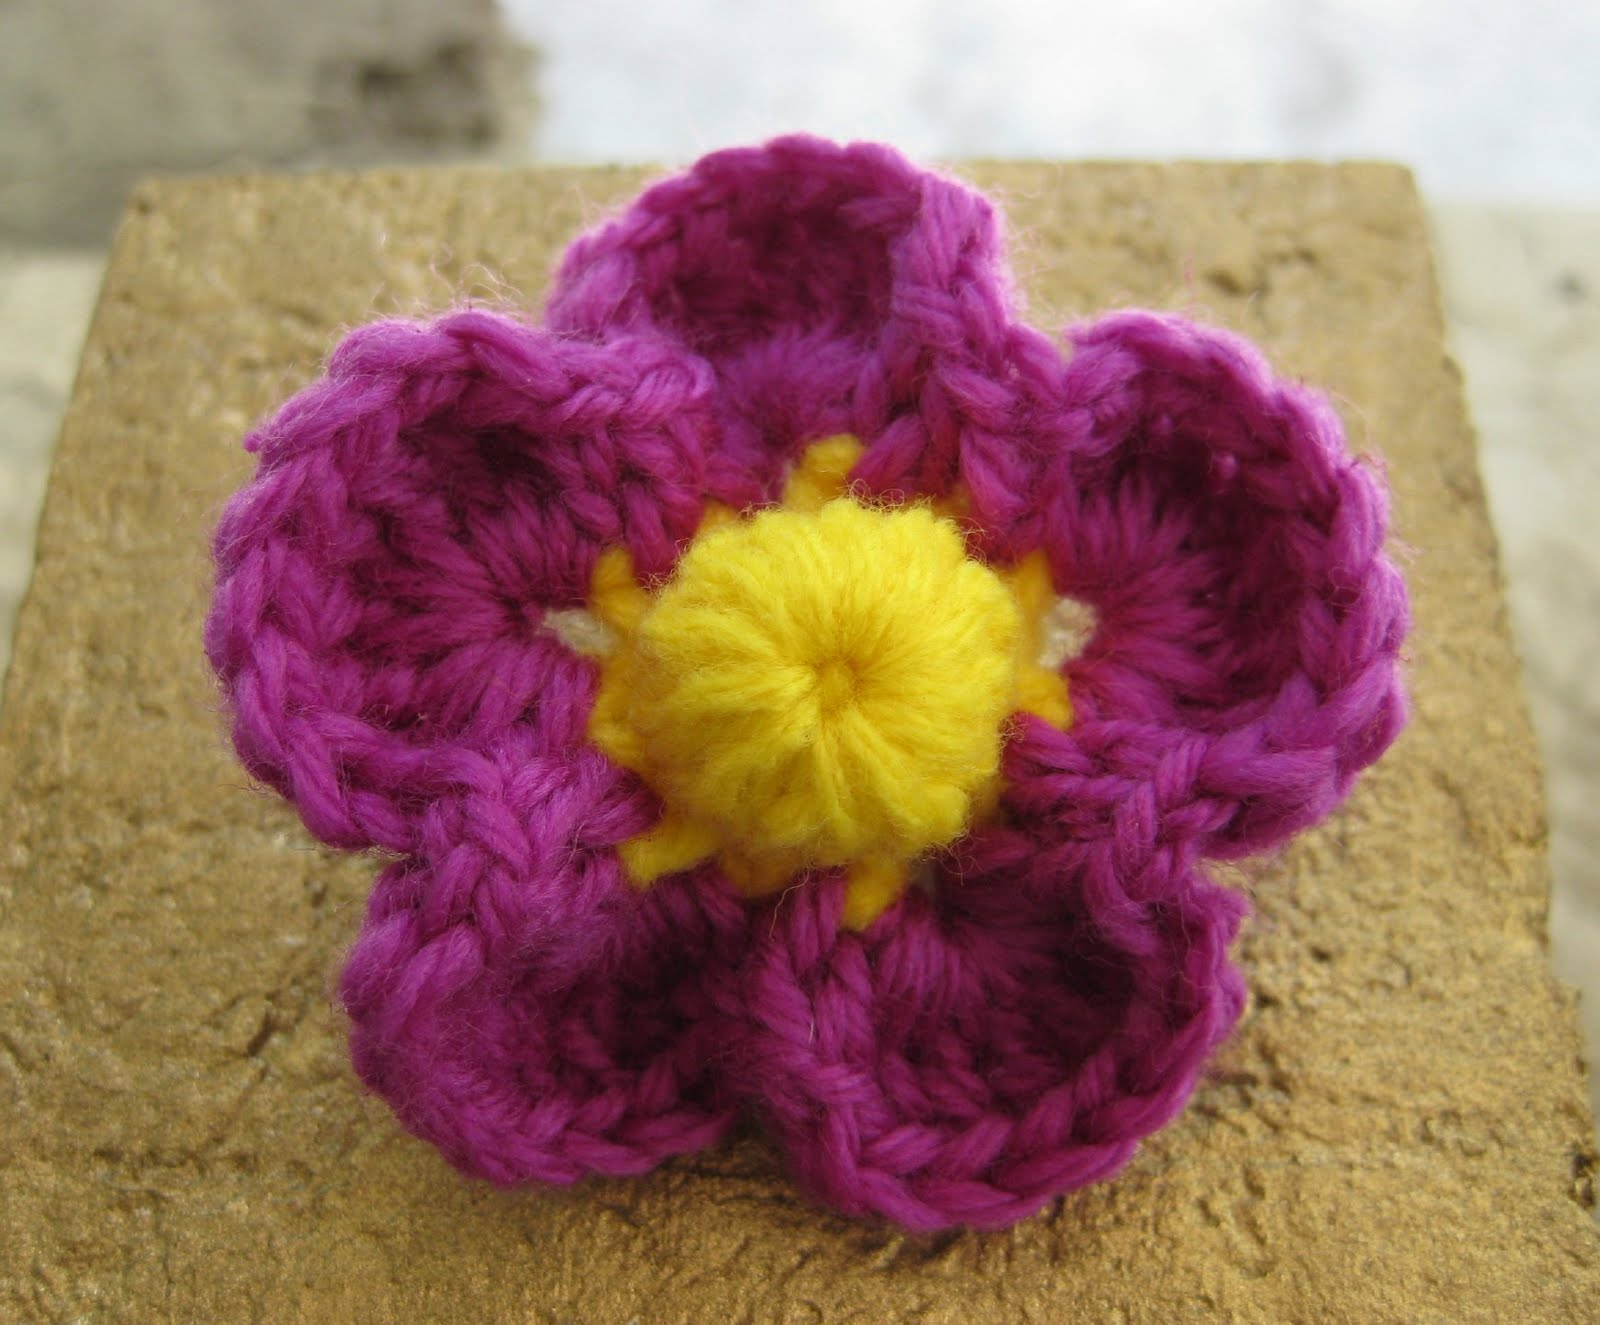 Crochet Patterns Of Flowers : Crochet and Other Stuff: Tropical Flower Pin - free crochet pattern